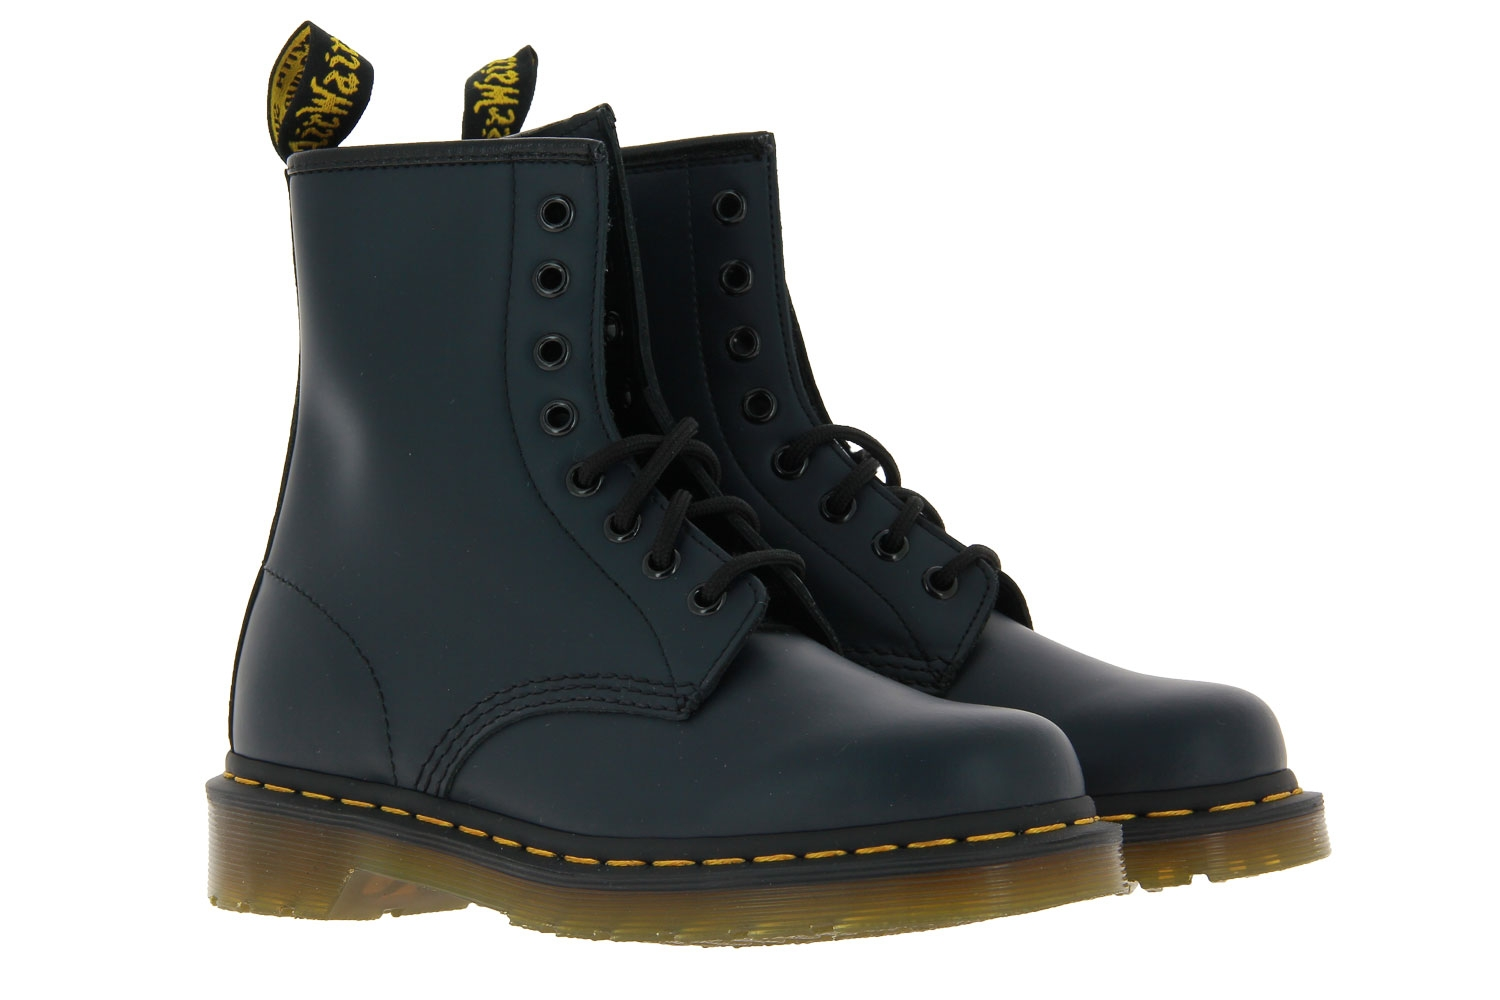 Dr. Martens boots 1460 NAVY SMOOTH